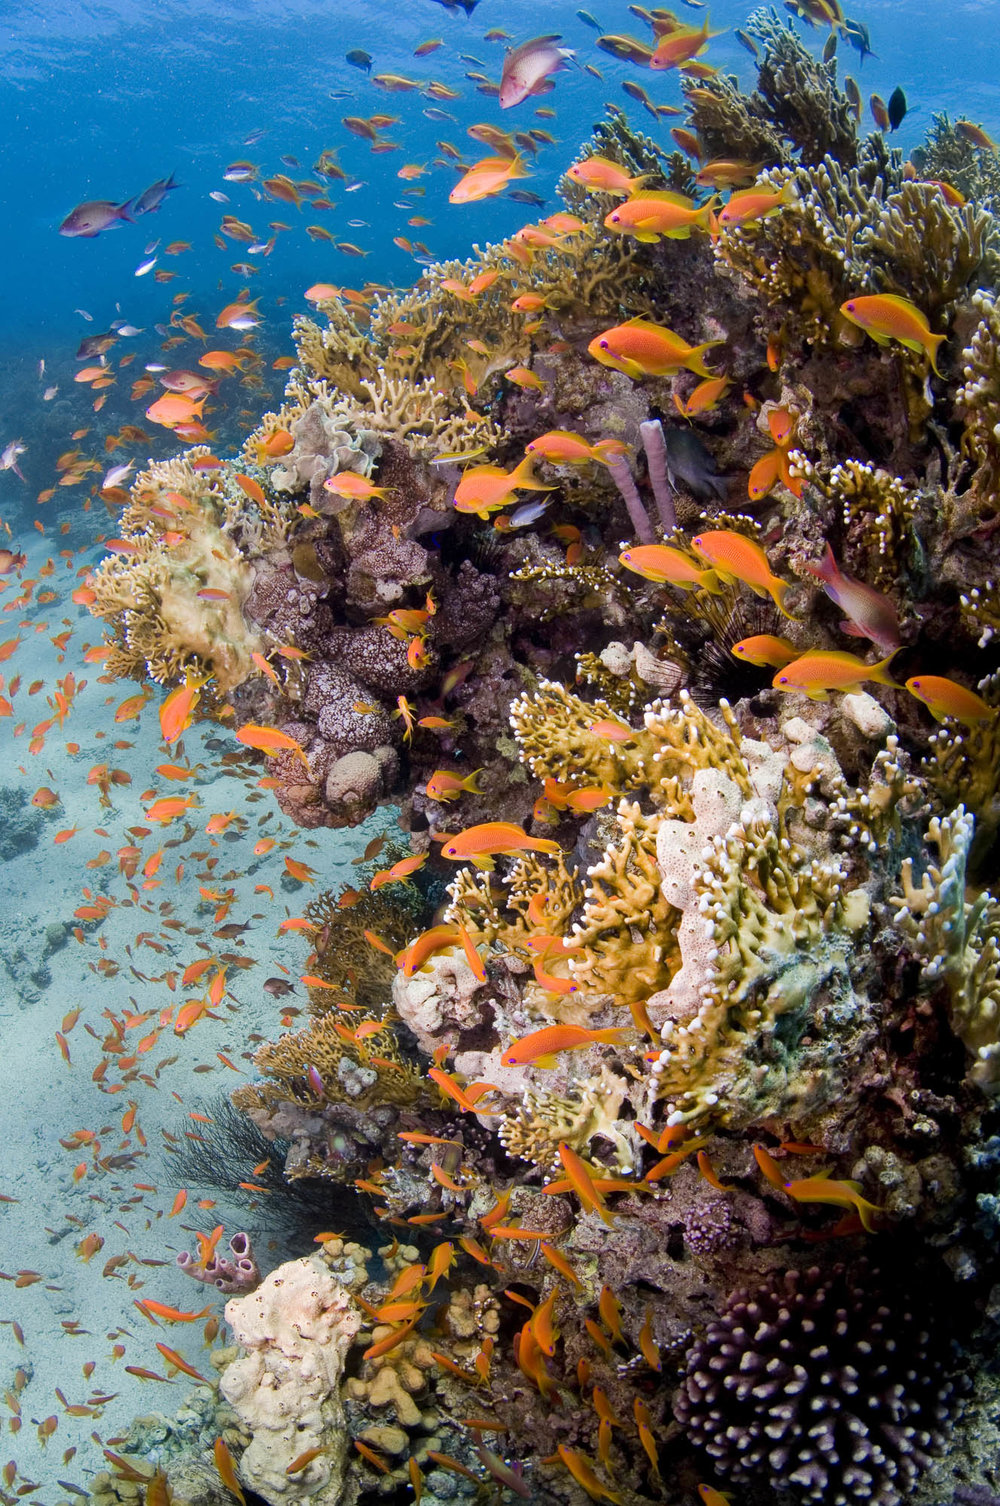 03 - fish swim On a healthy reef credit: warren baverstock / coral reef image bank